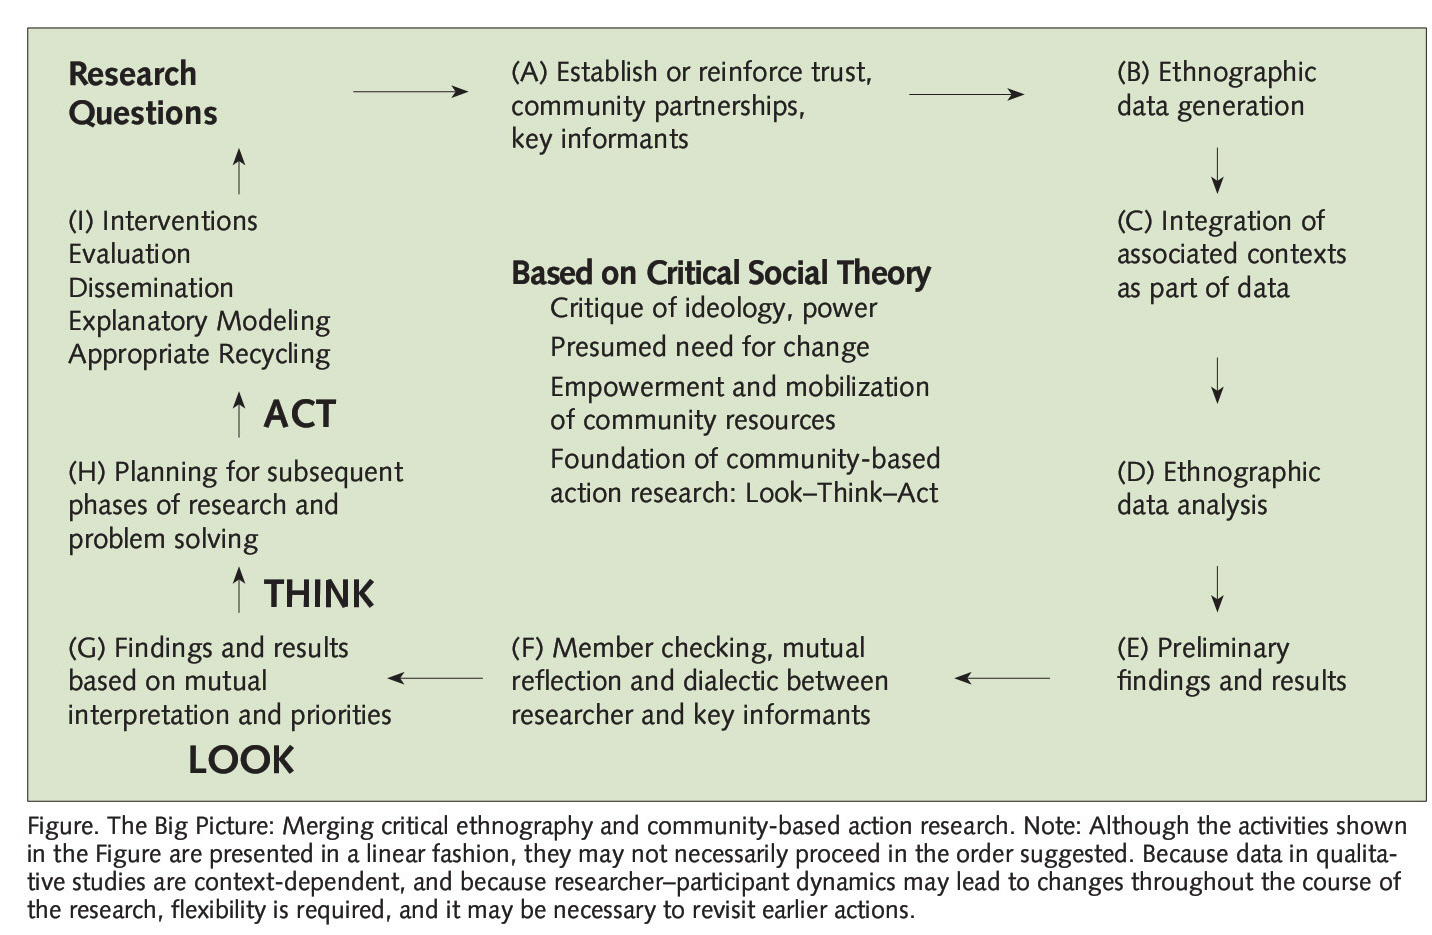 Figure. The Big Picture: Merging critical ethnography and community-based action research. Note: Although the activities shown in the Figure are presented in a linear fashion, they may not necessarily proceed in the order suggested. Because data in qualitative studies are context-dependent, and because researcher-participant dynamics may lead to changes throughout the course of the research, flexibility is required, and it may be necessary to revisit earlier actions.